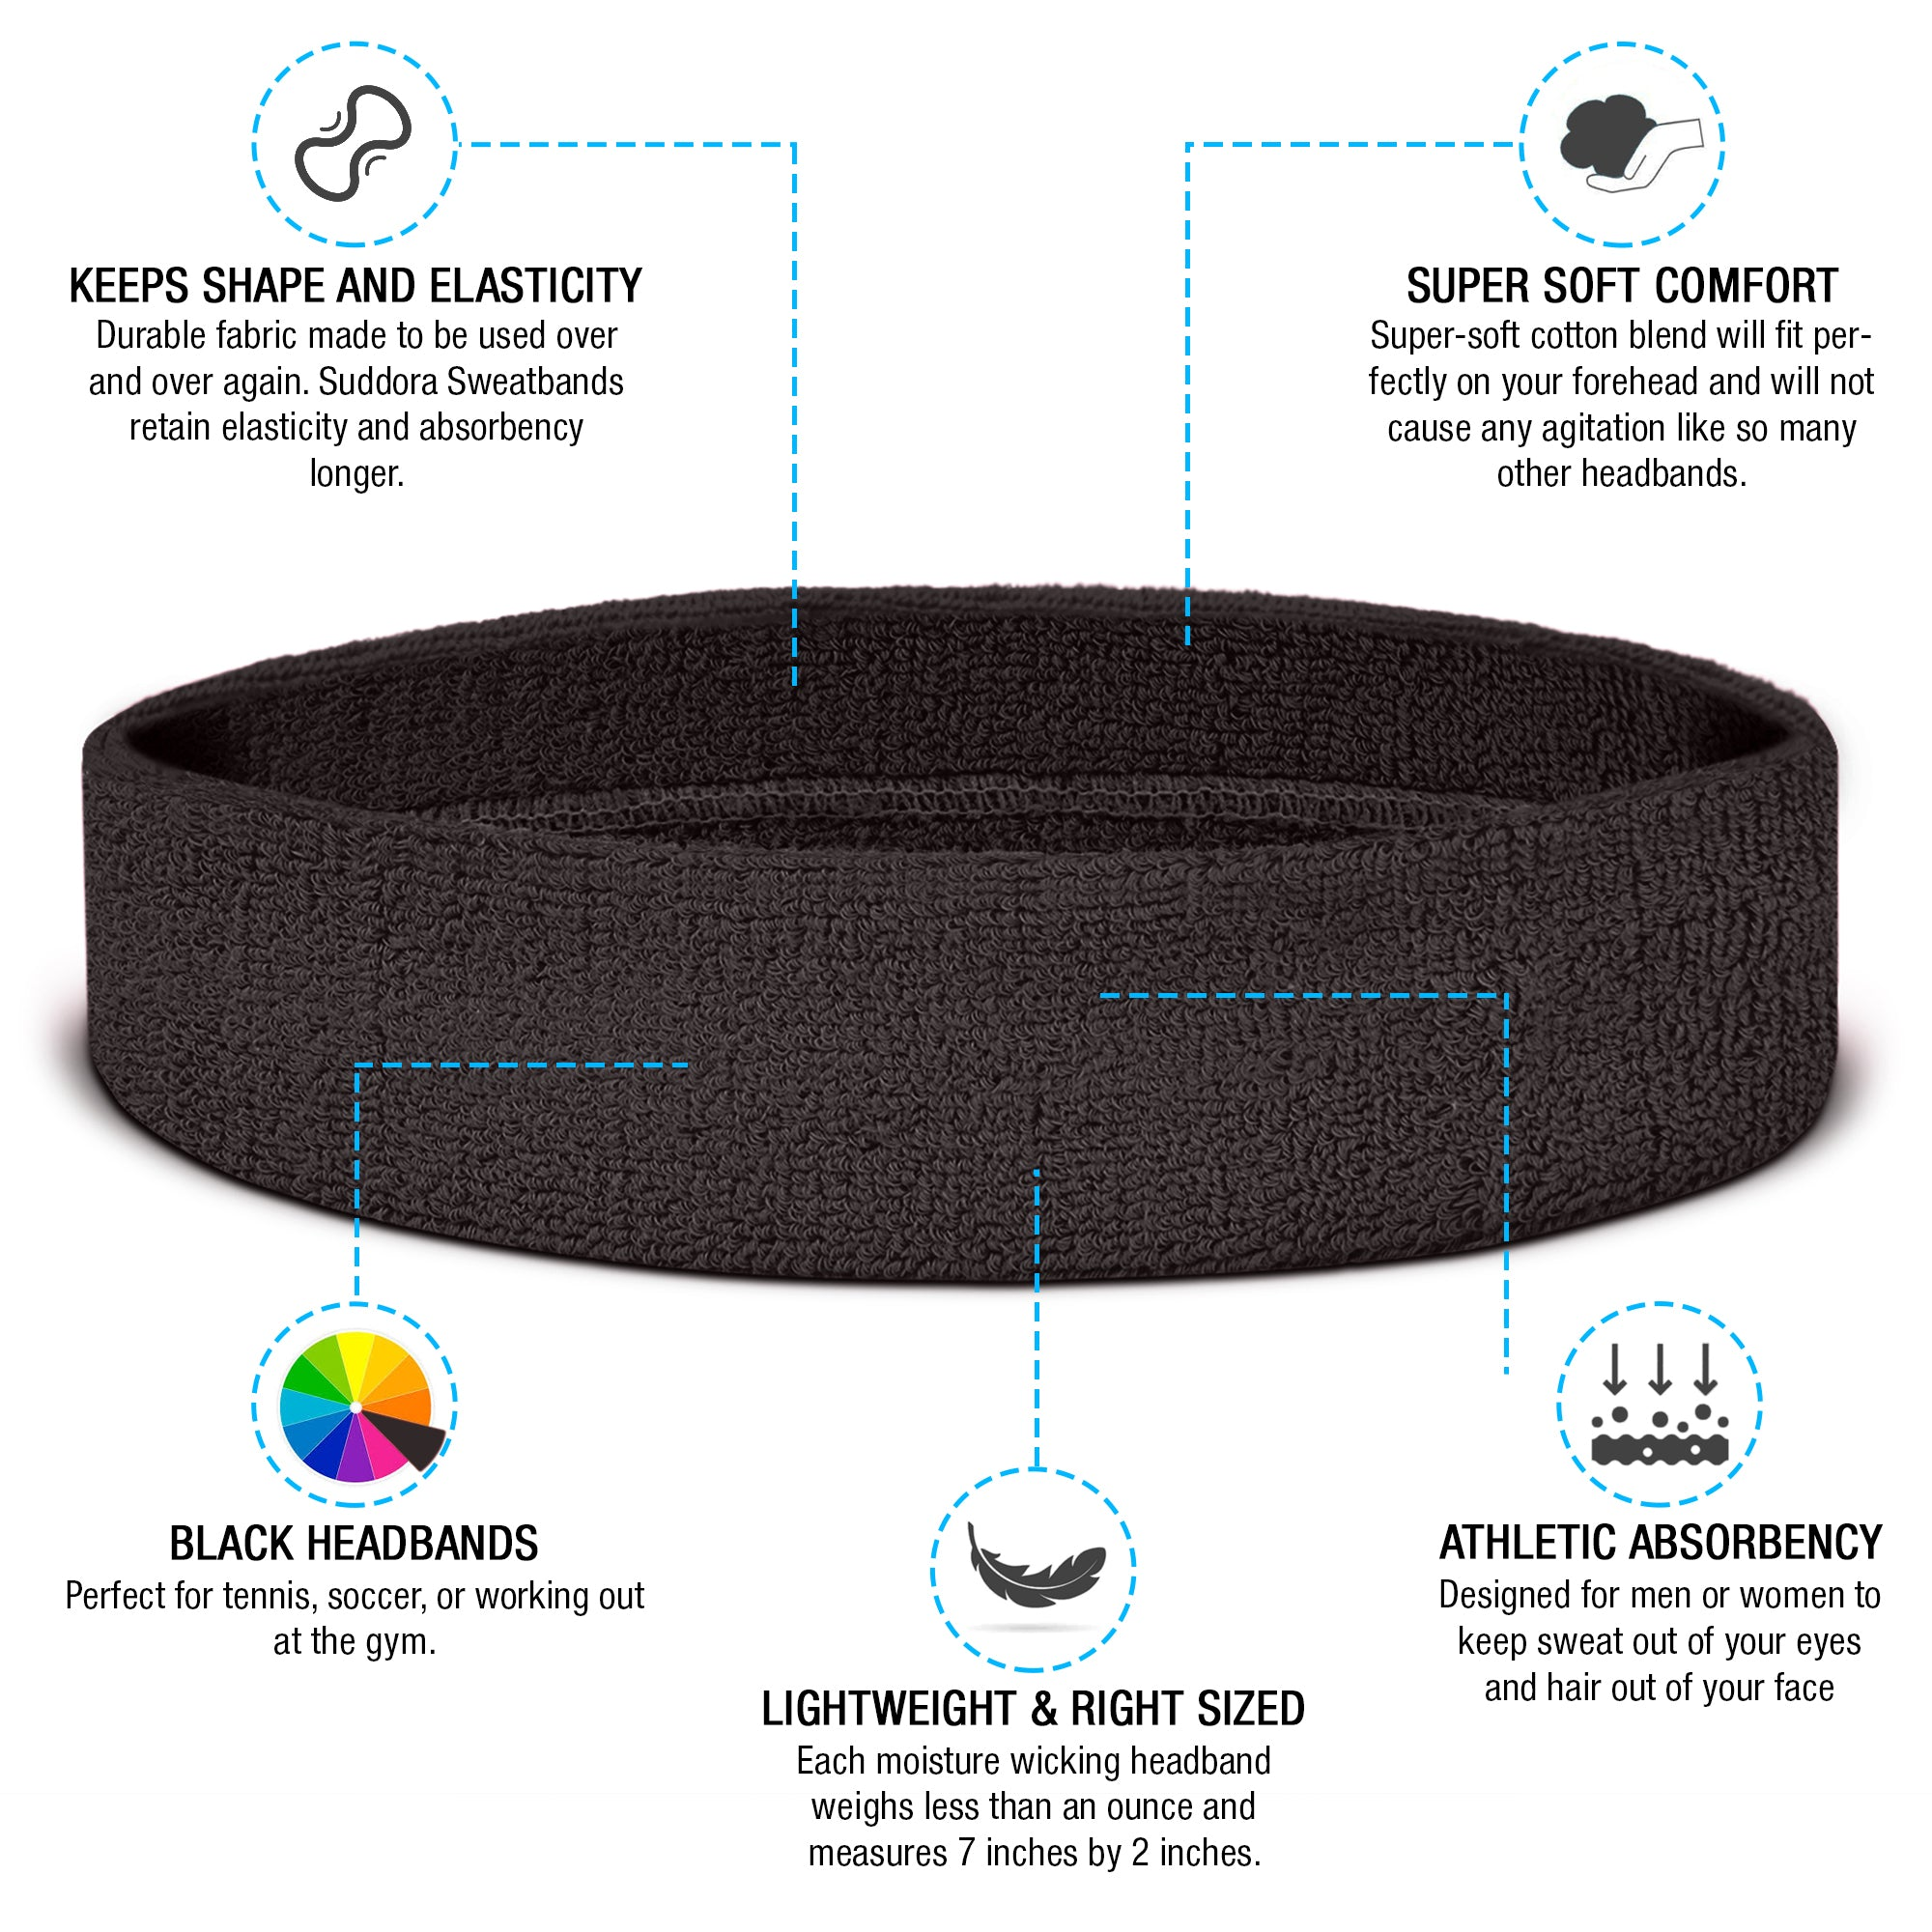 Black Headbands Information